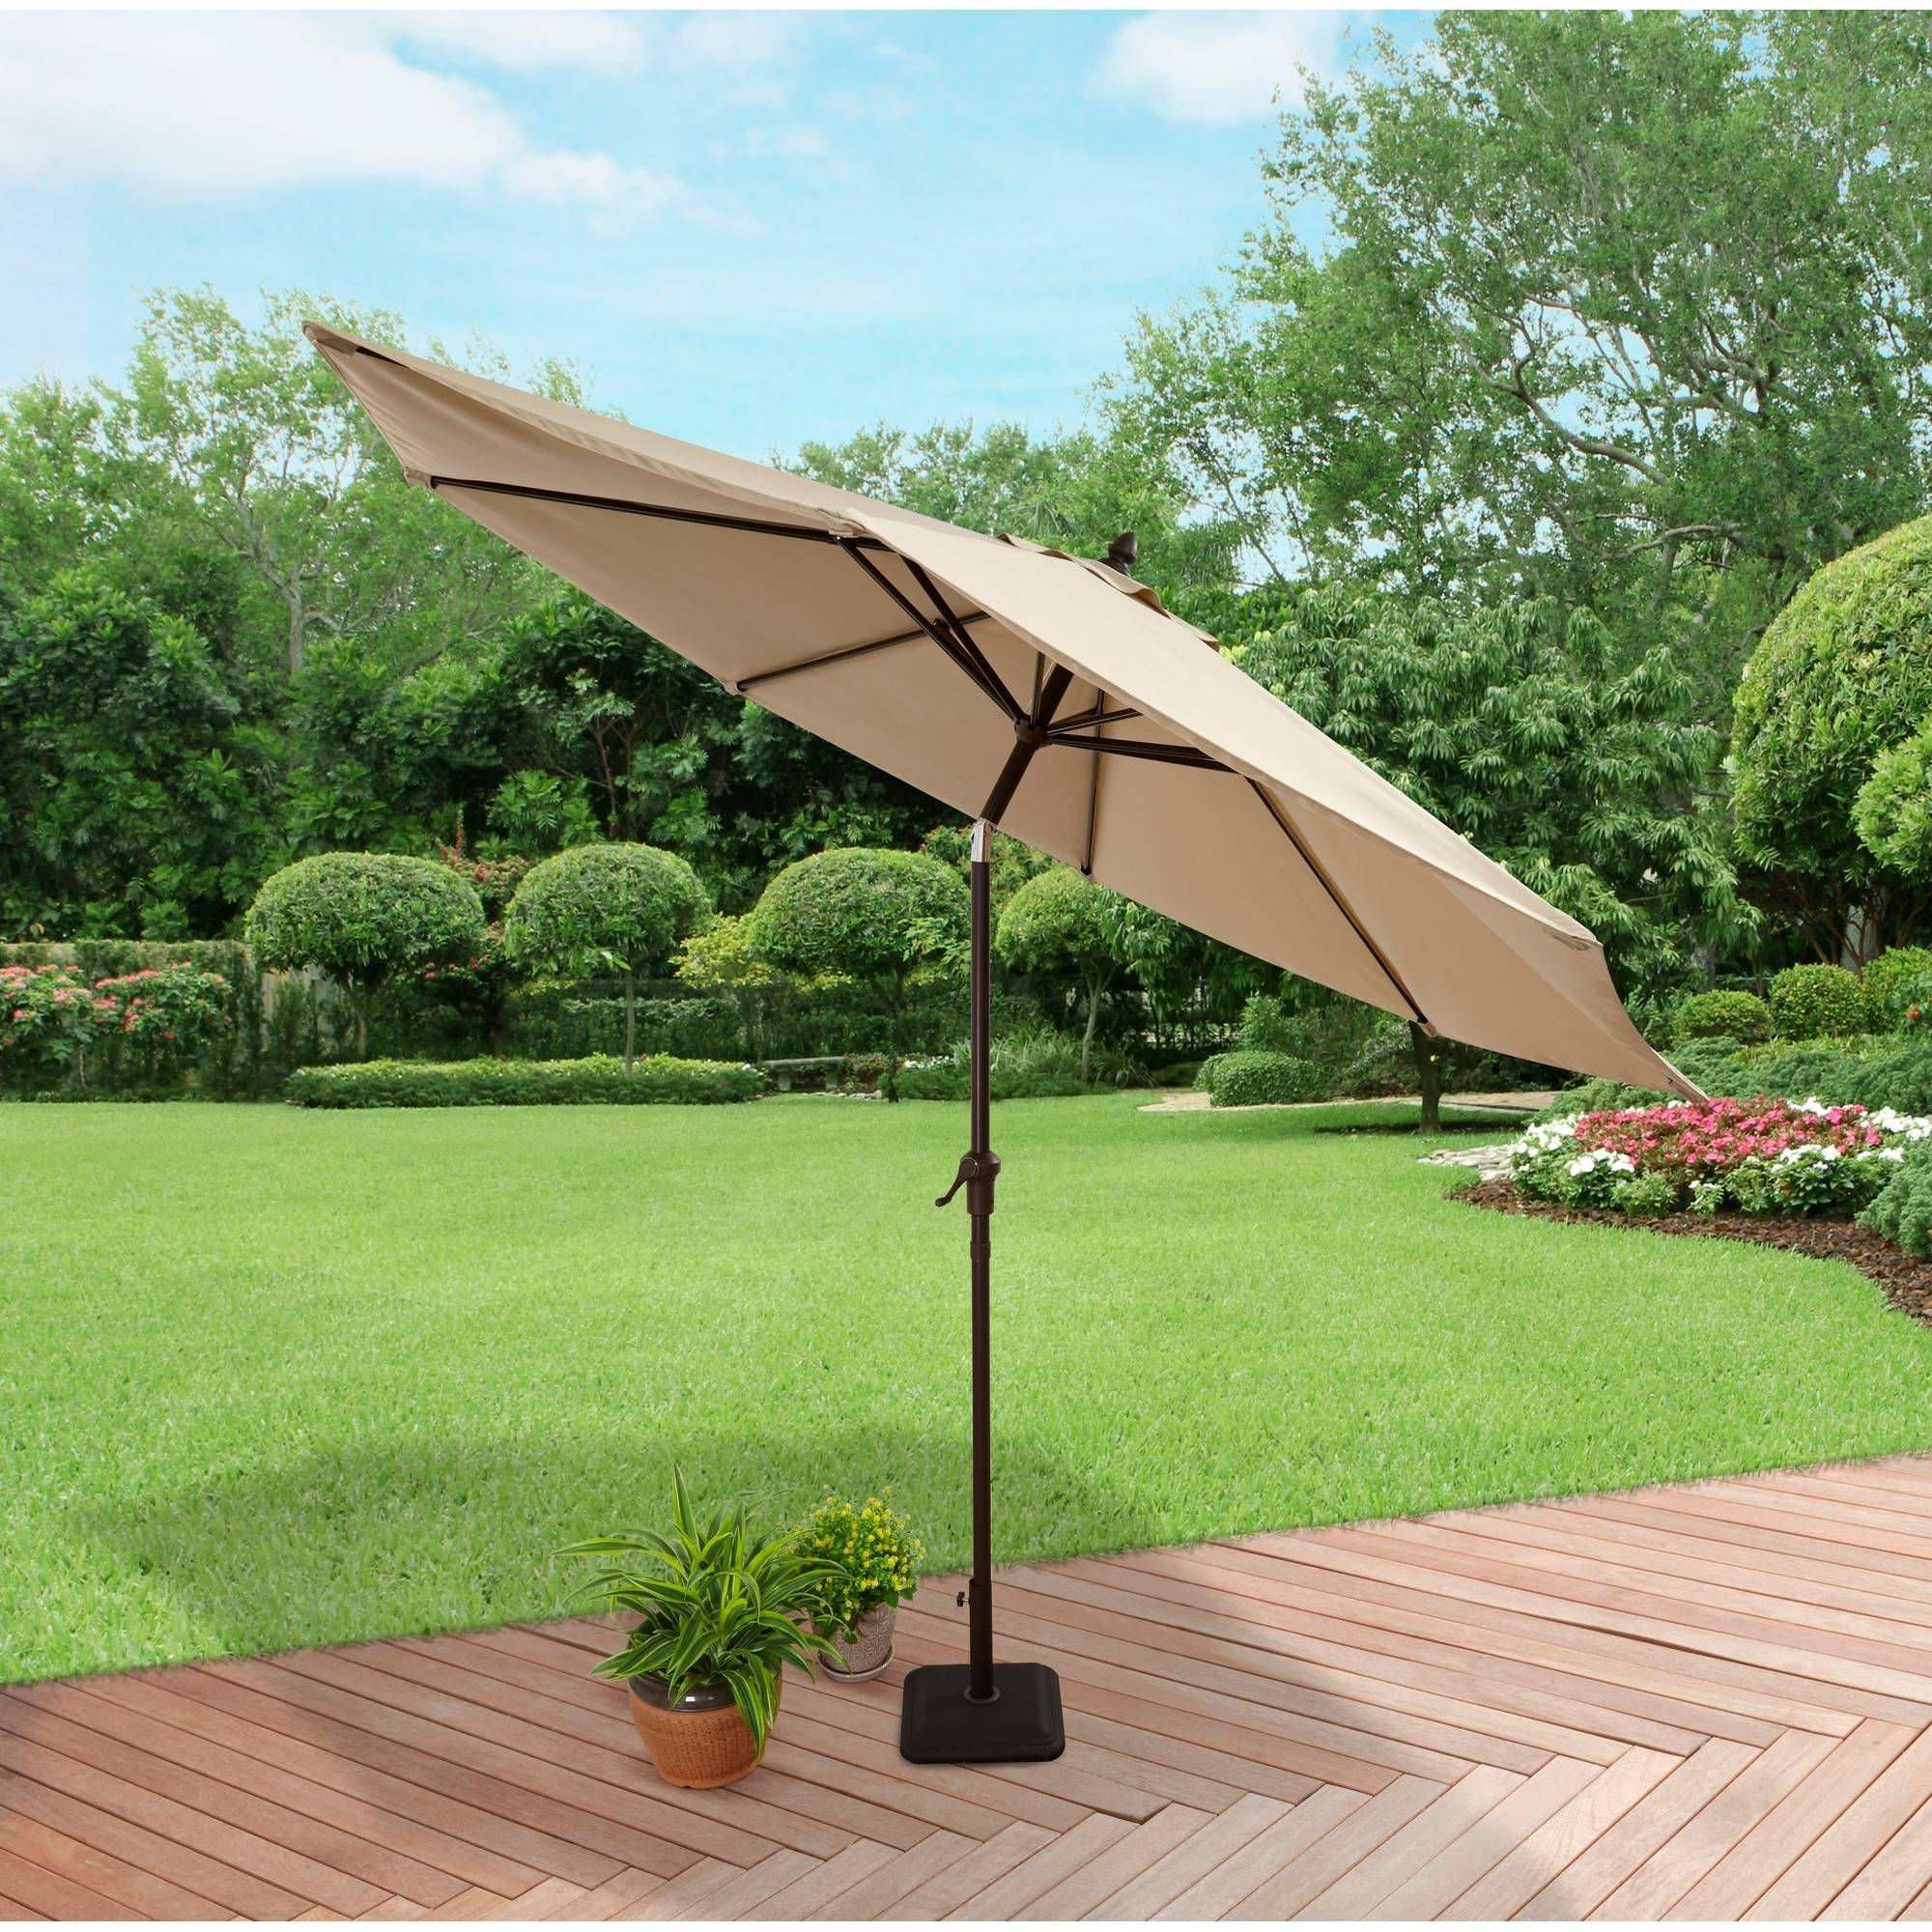 Better Homes and Gardens Aluminum Umbrella with Taupe Solution-Dye Polyester Fabric, 9' (274.32 cm) by